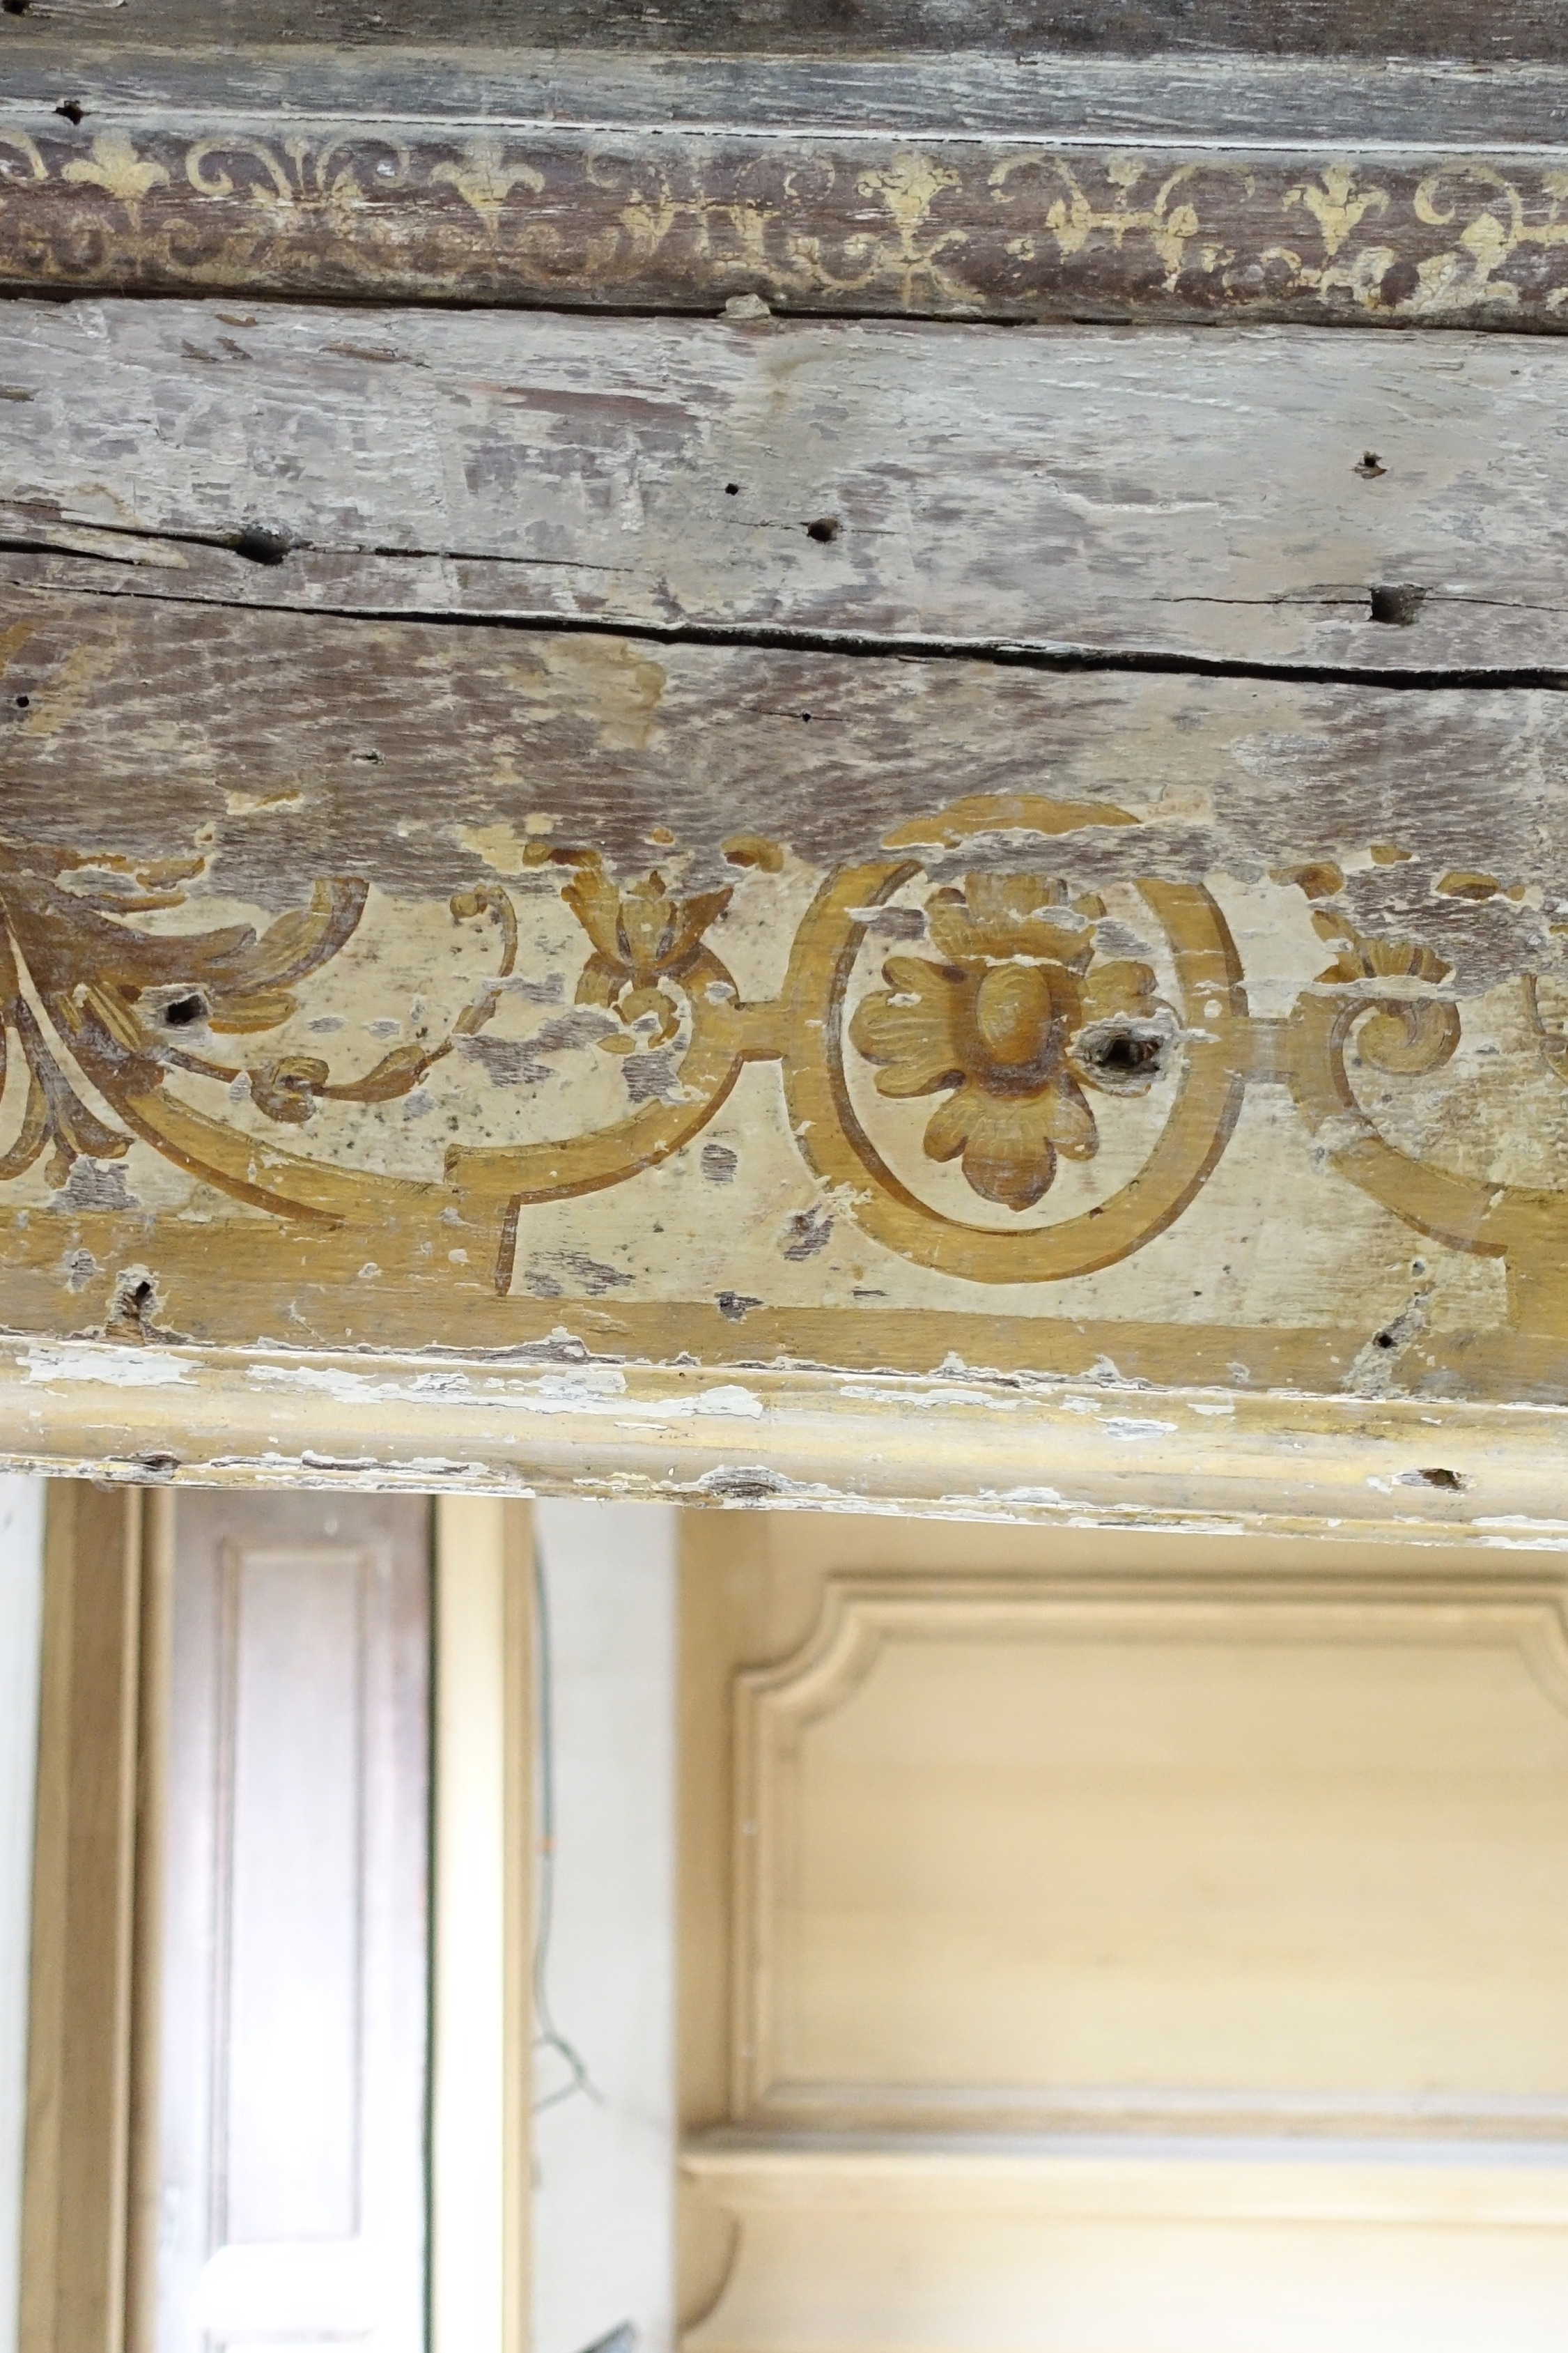 17e century painting decor on beams and ceiling